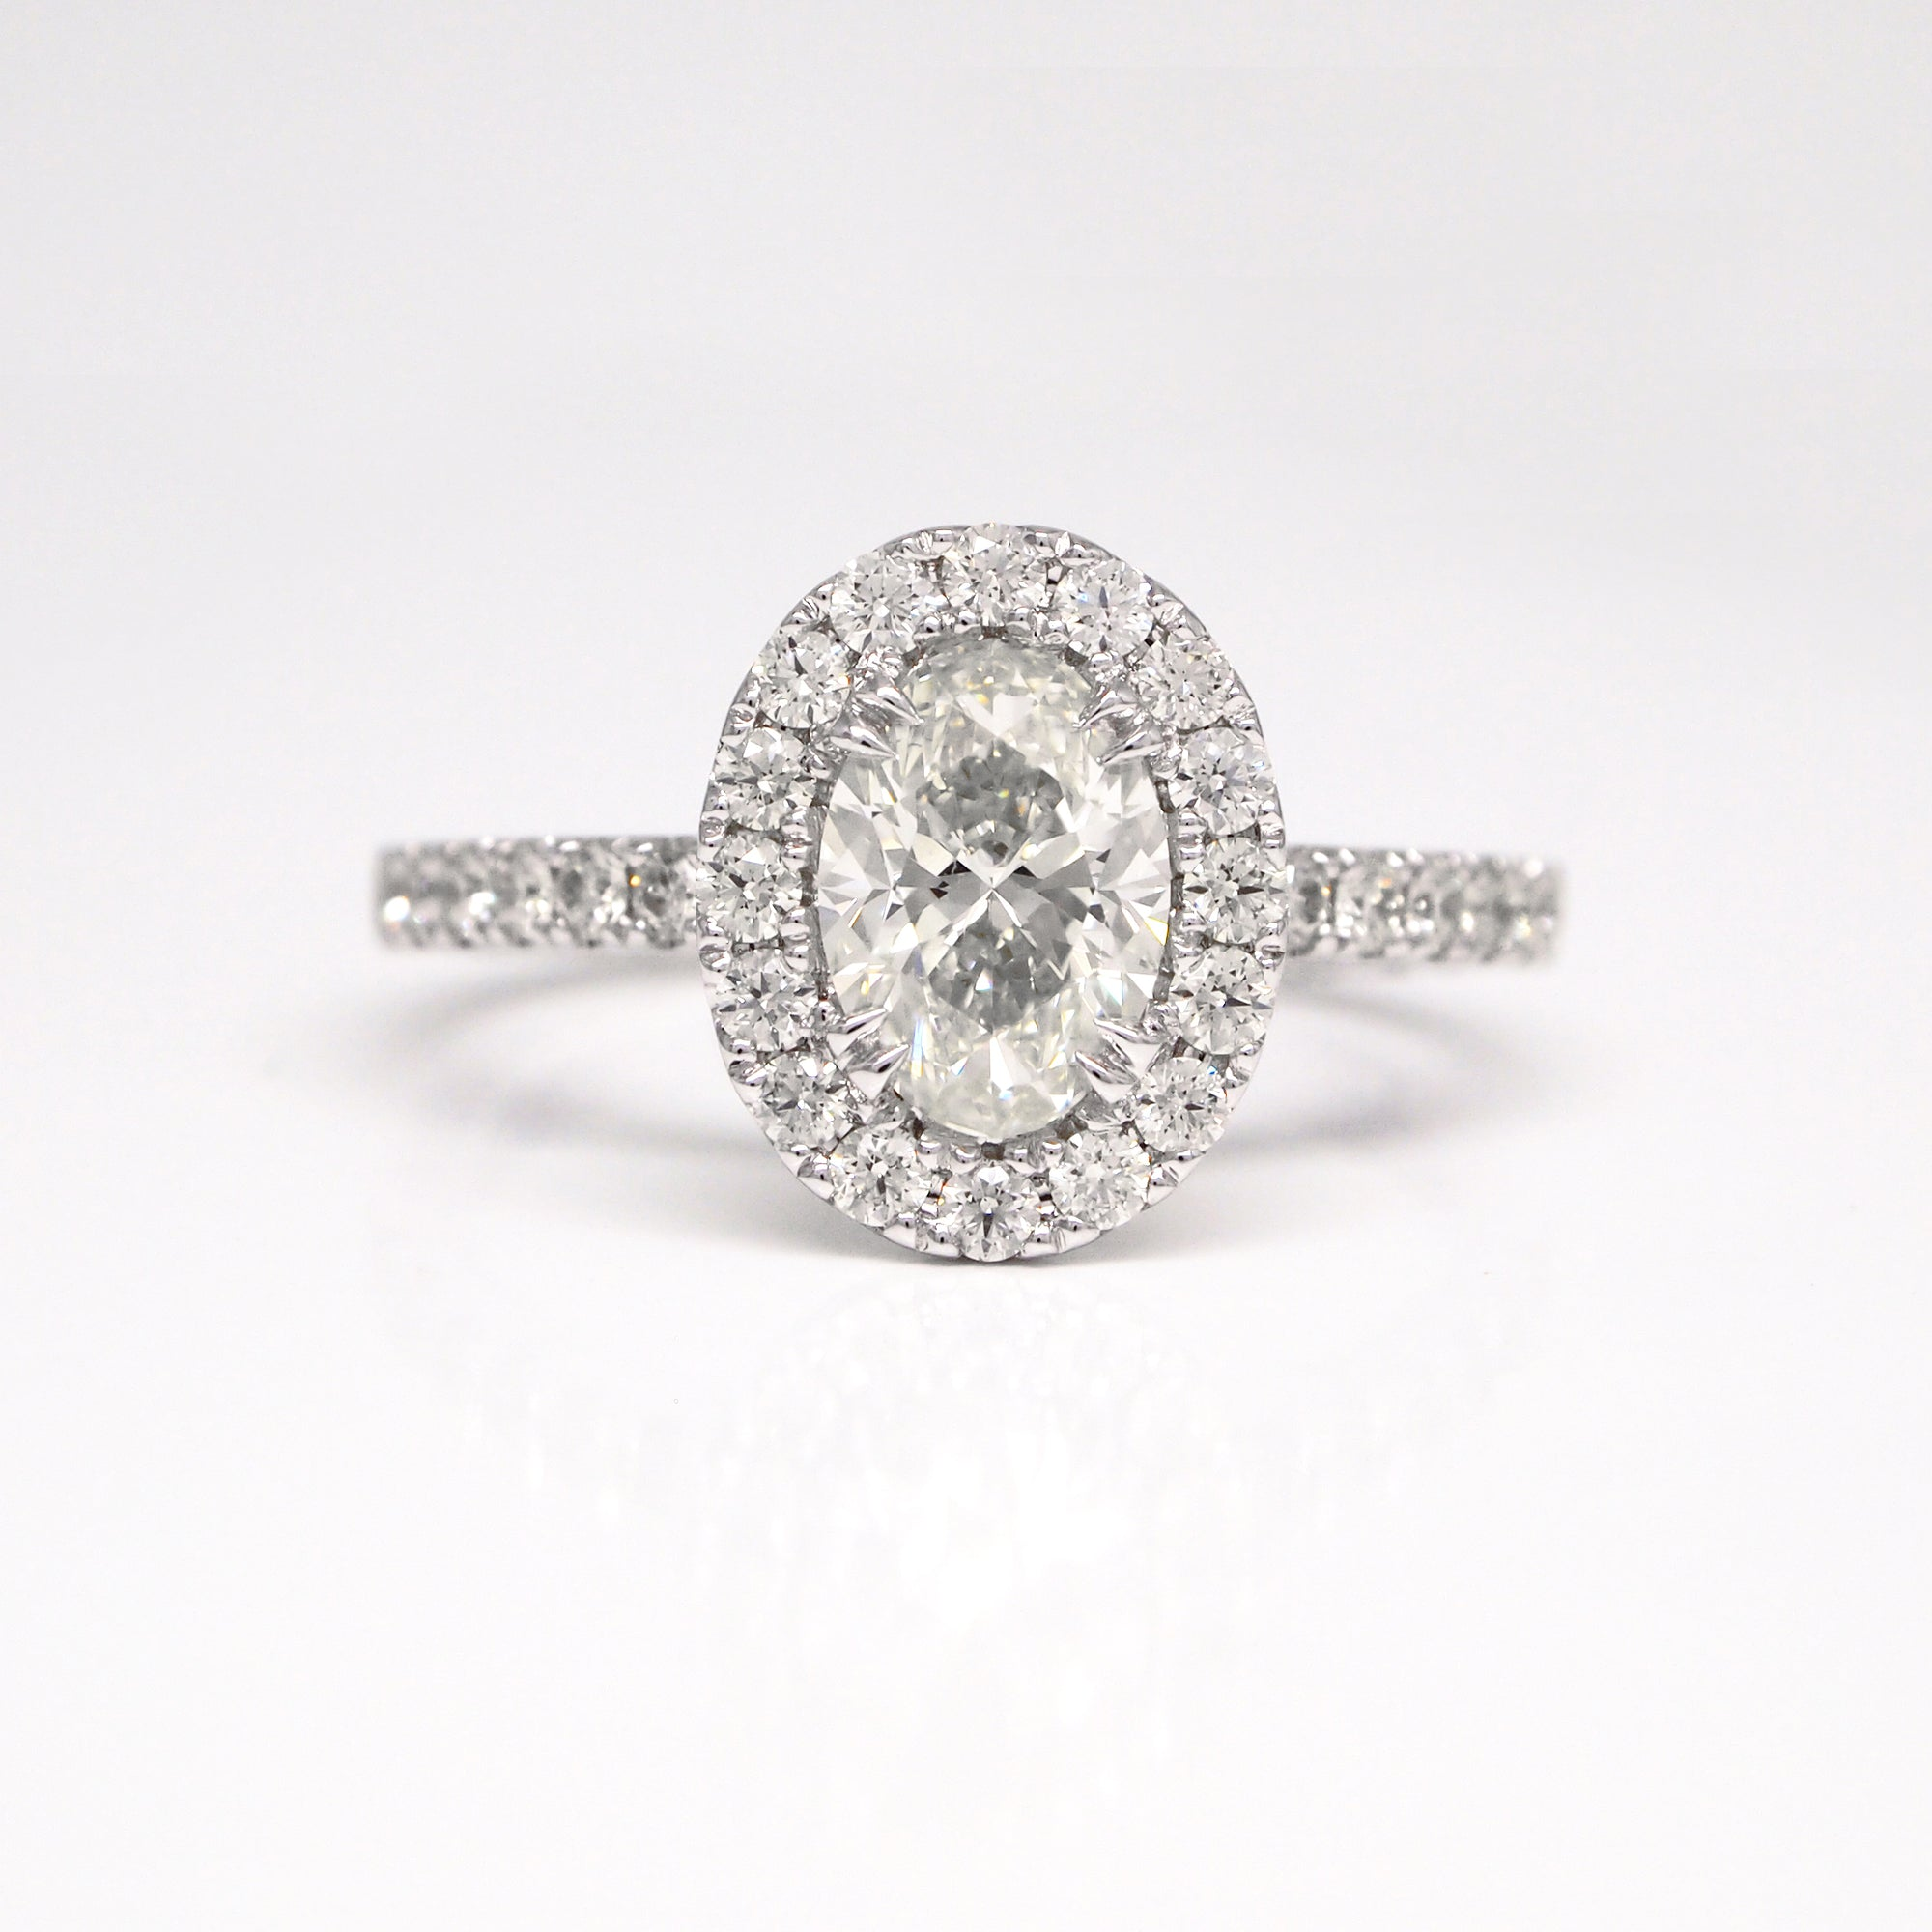 14K Oval Diamond Engagement Ring With Halo